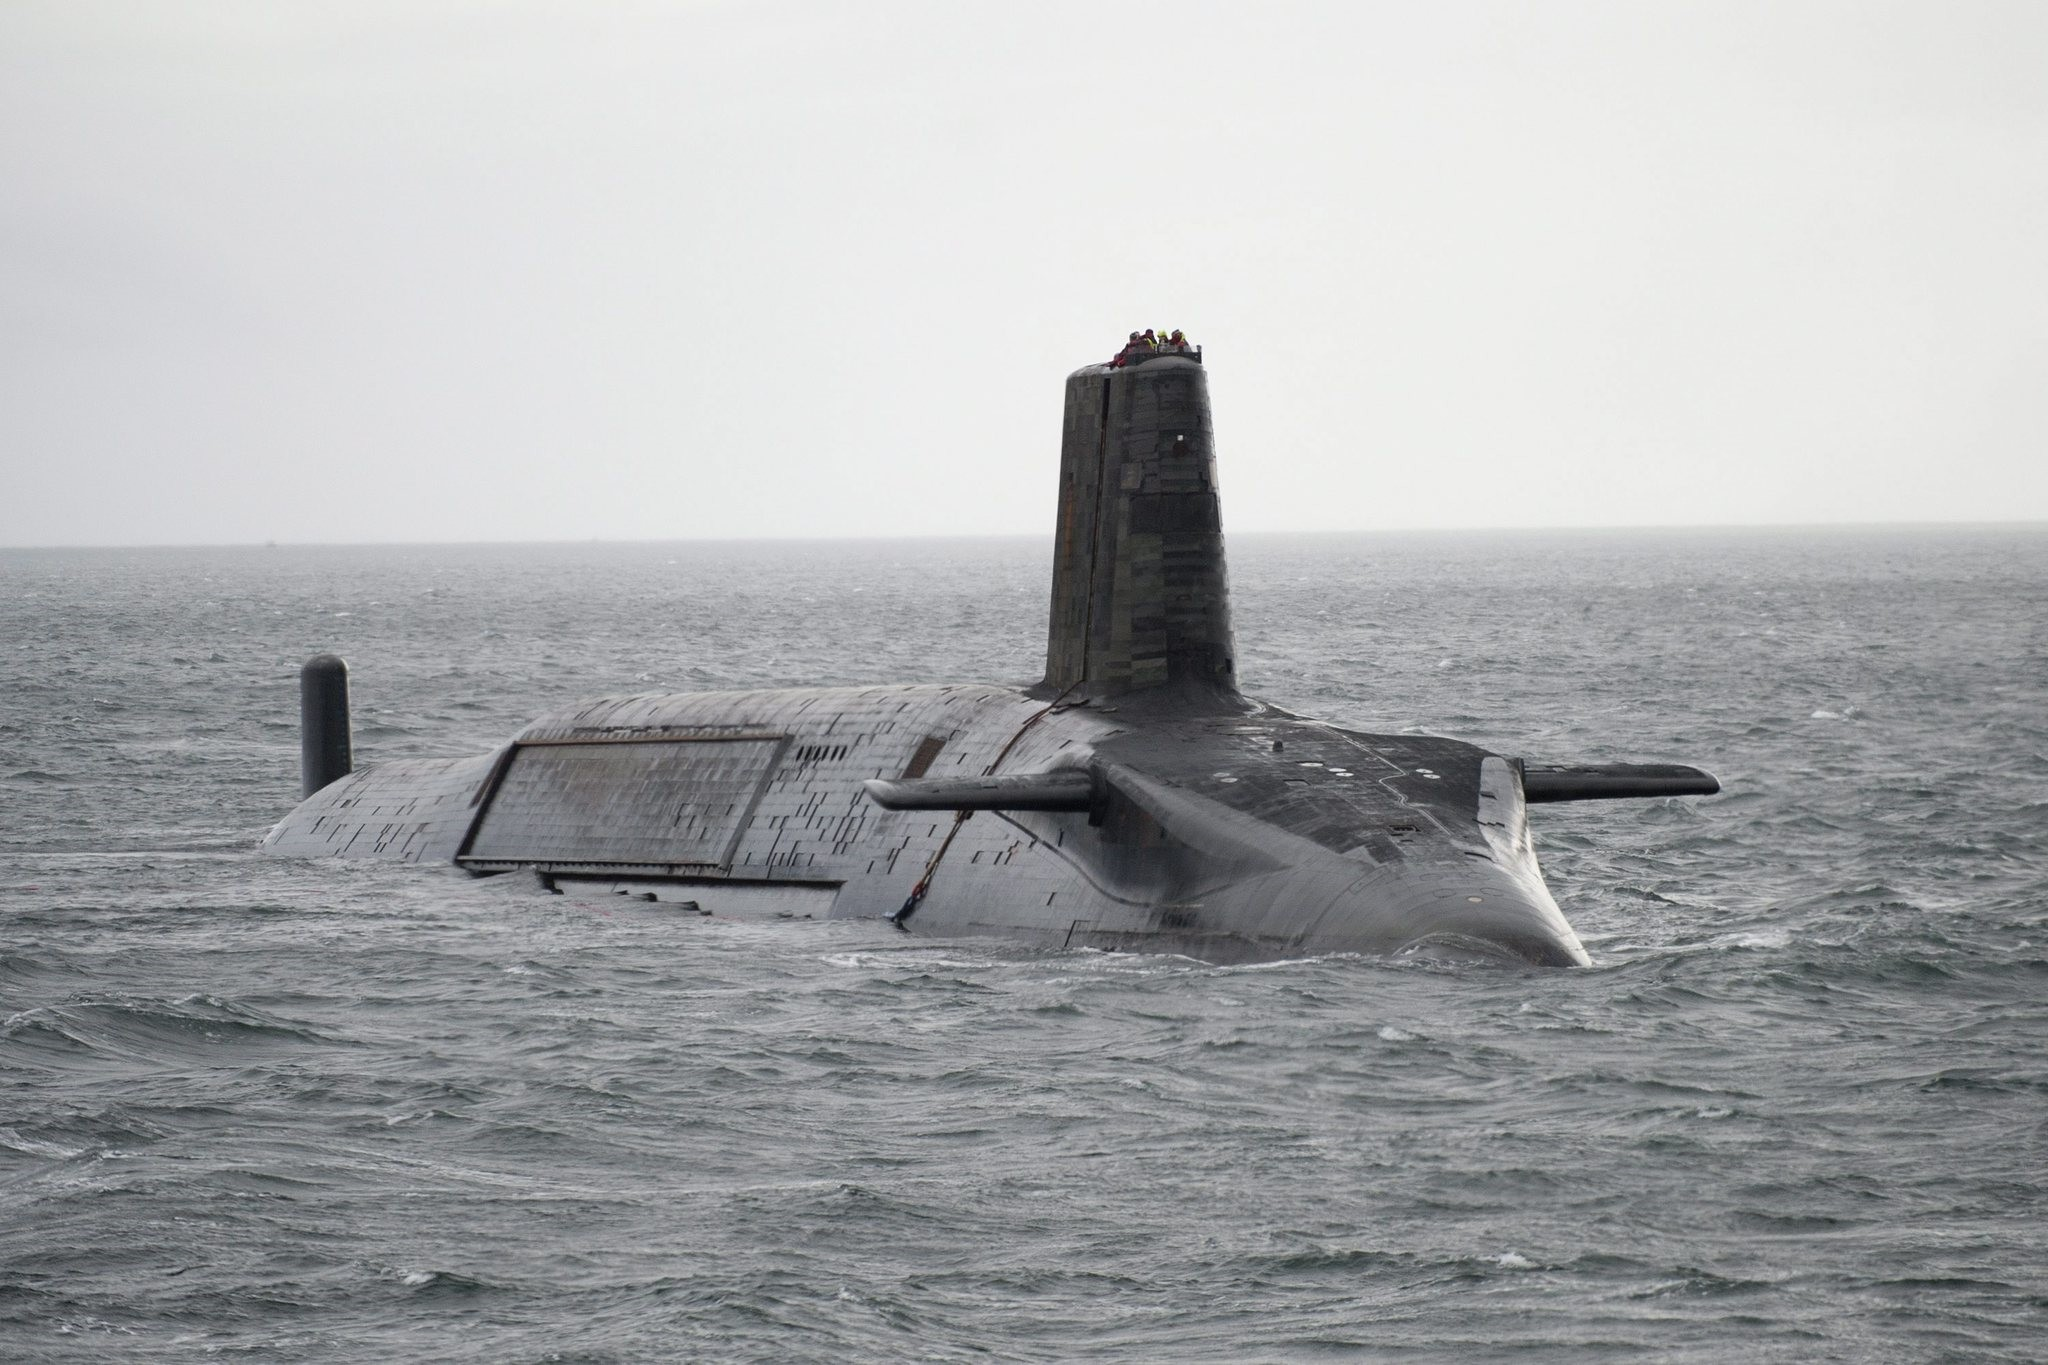 British Royal Navy HMS Vengeance Vanguard Class submarine departing Largs, Scotland, for Devonport, southern England (BRITISH MINISTRY OF DEFENCE DE&S)